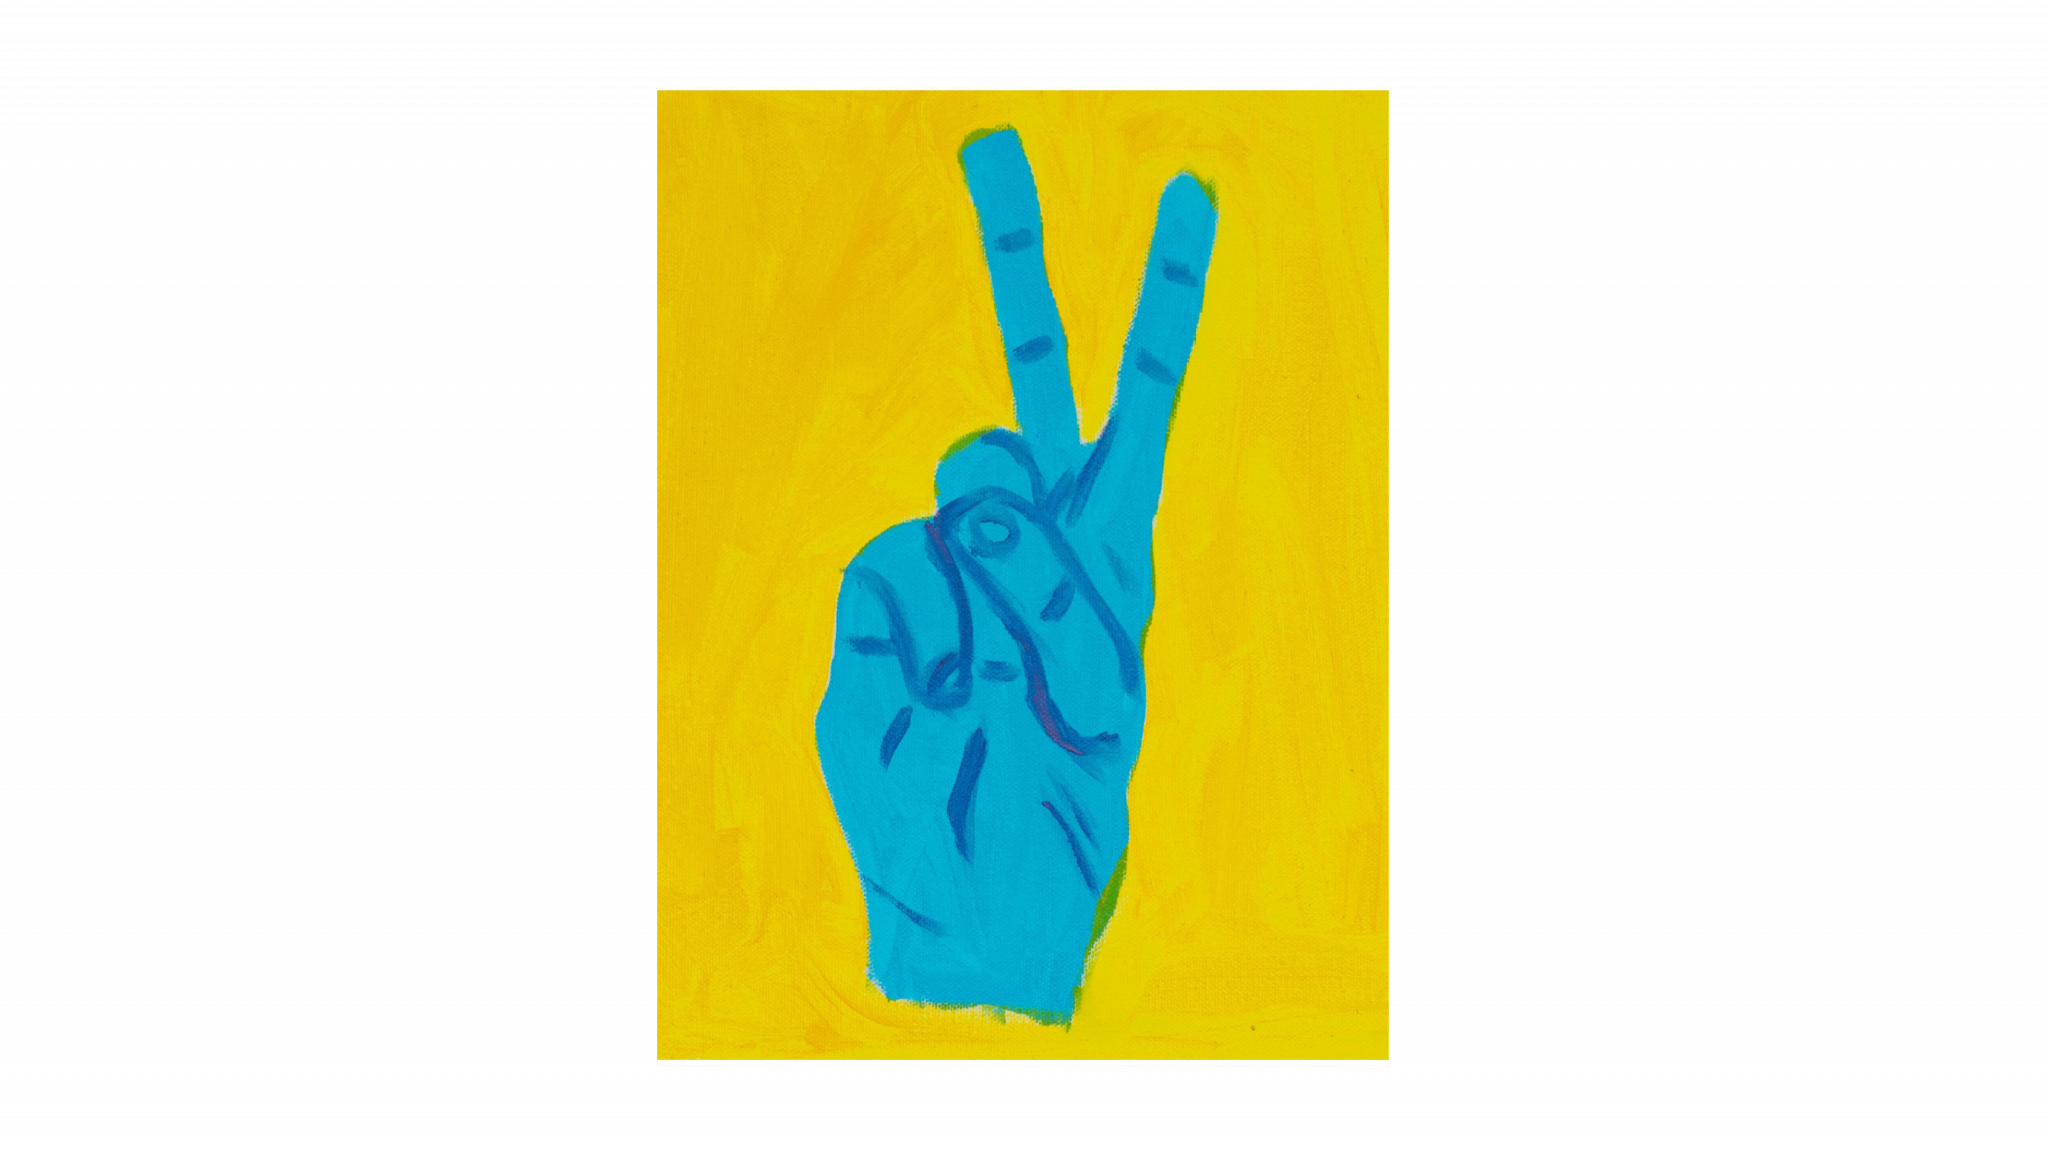 Peace/ Get Fucked 2021 Acrylic on canvas—a painting of a hand holding up the V sign; two fingers raised in either defiance or victory. Blue hand against yellow background.